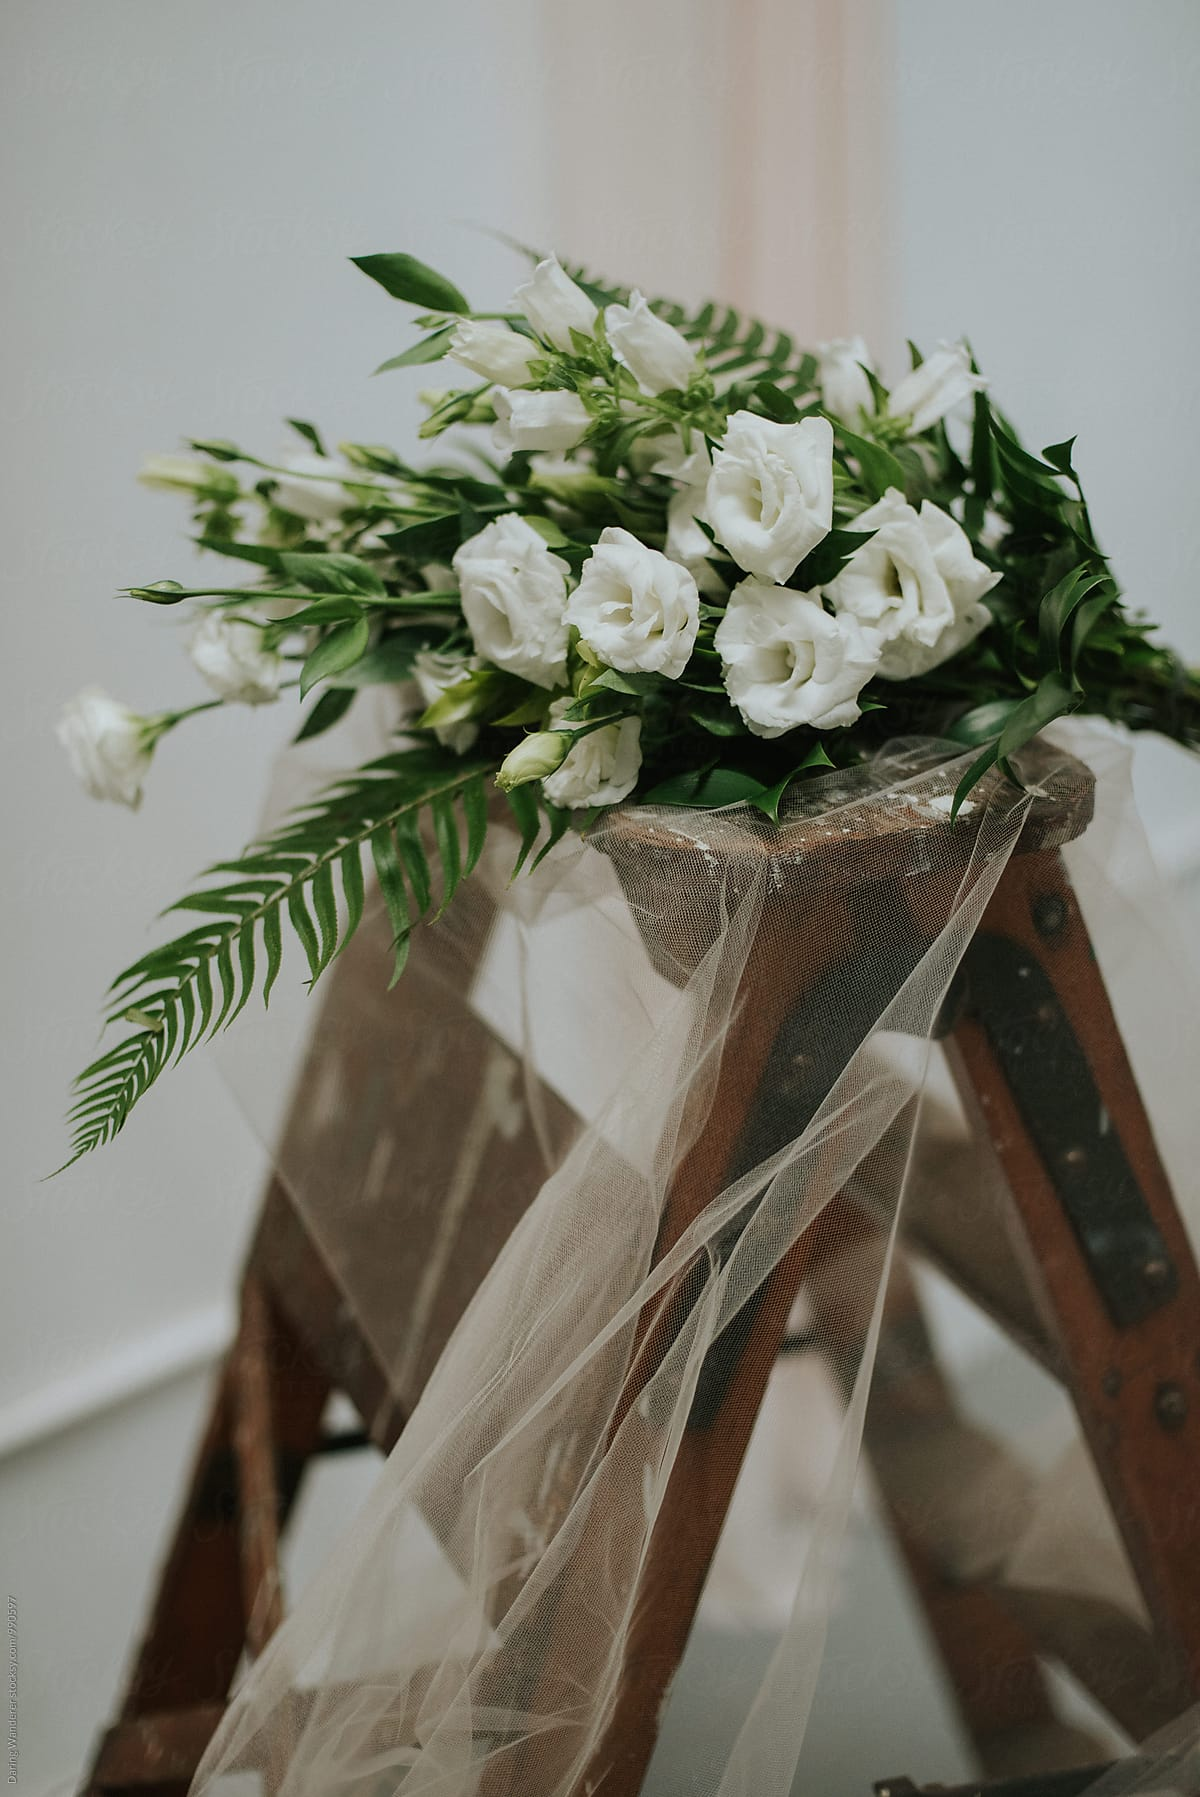 Simple Neutral White Ranunculus And Fern Flower Bouquet Stocksy United